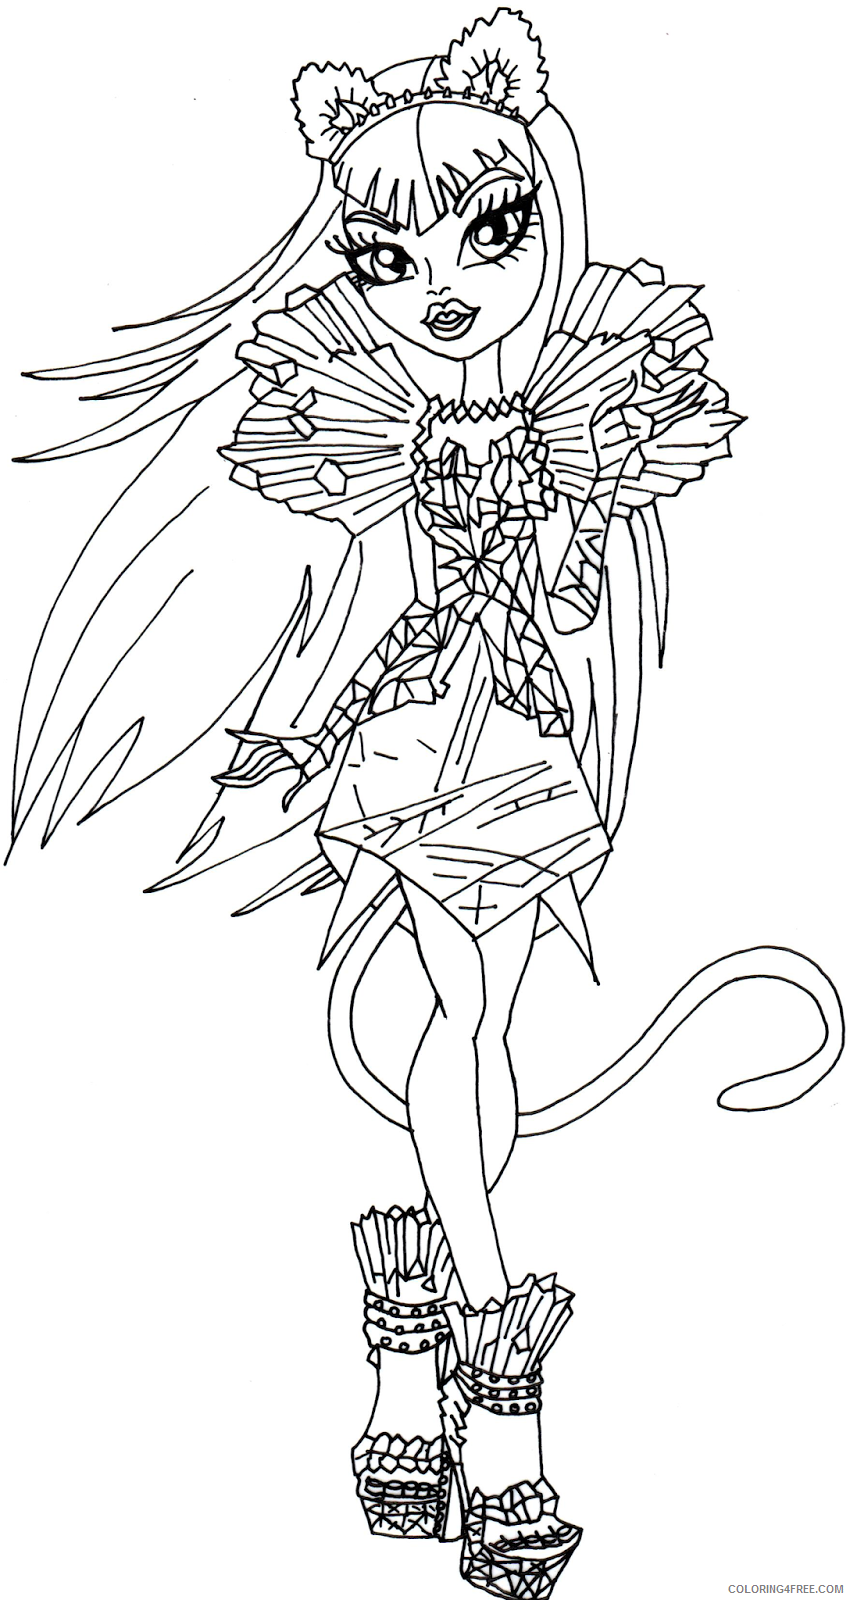 monster high coloring pages catty noir Coloring4free